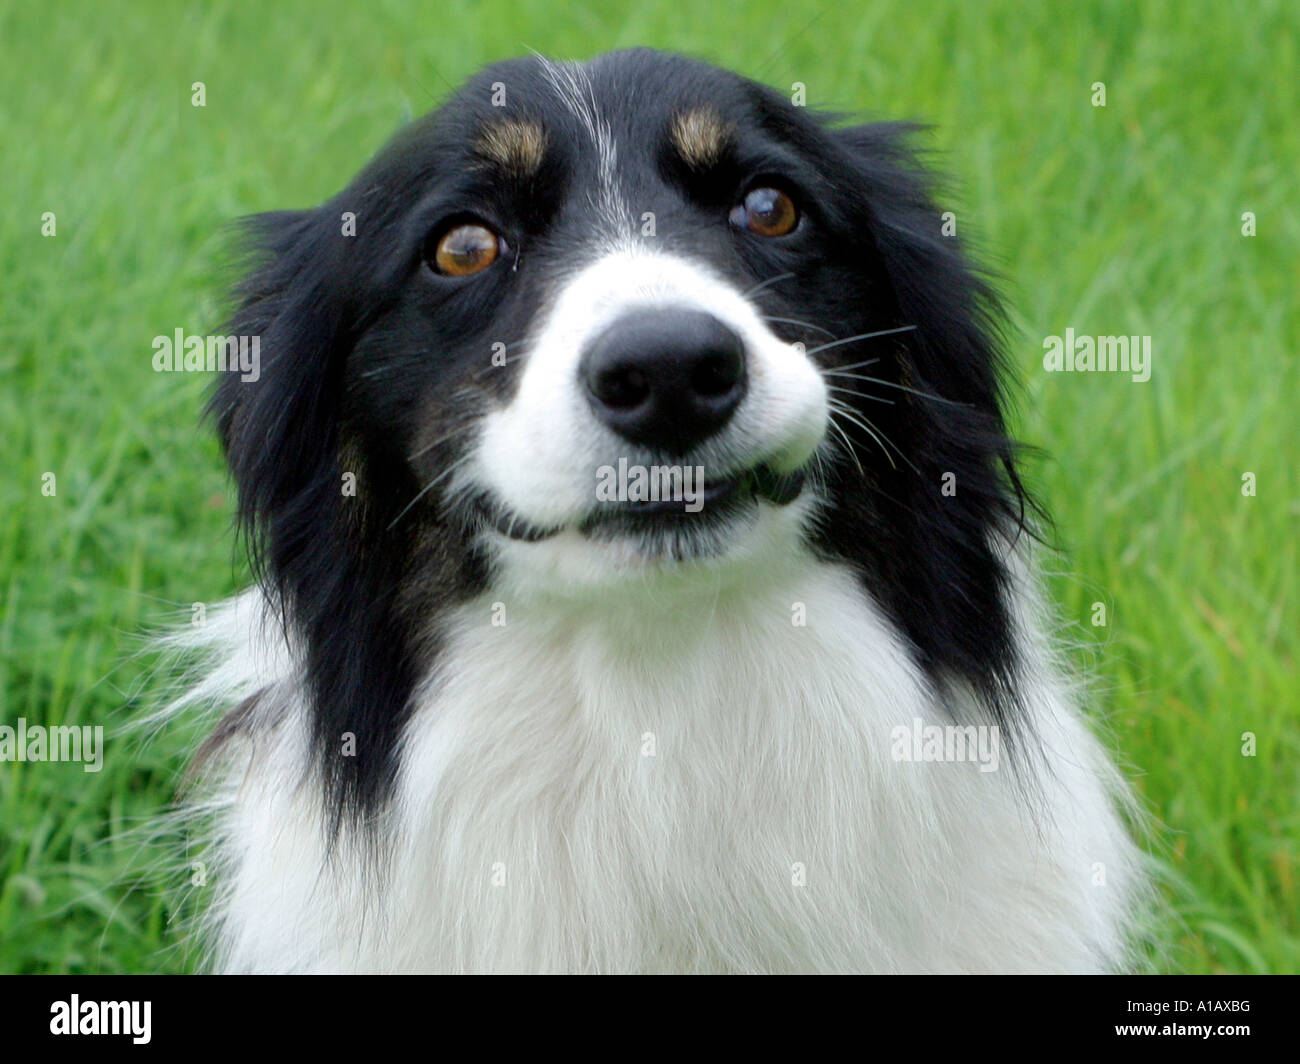 A collie pulling a face at the camera. - Stock Image